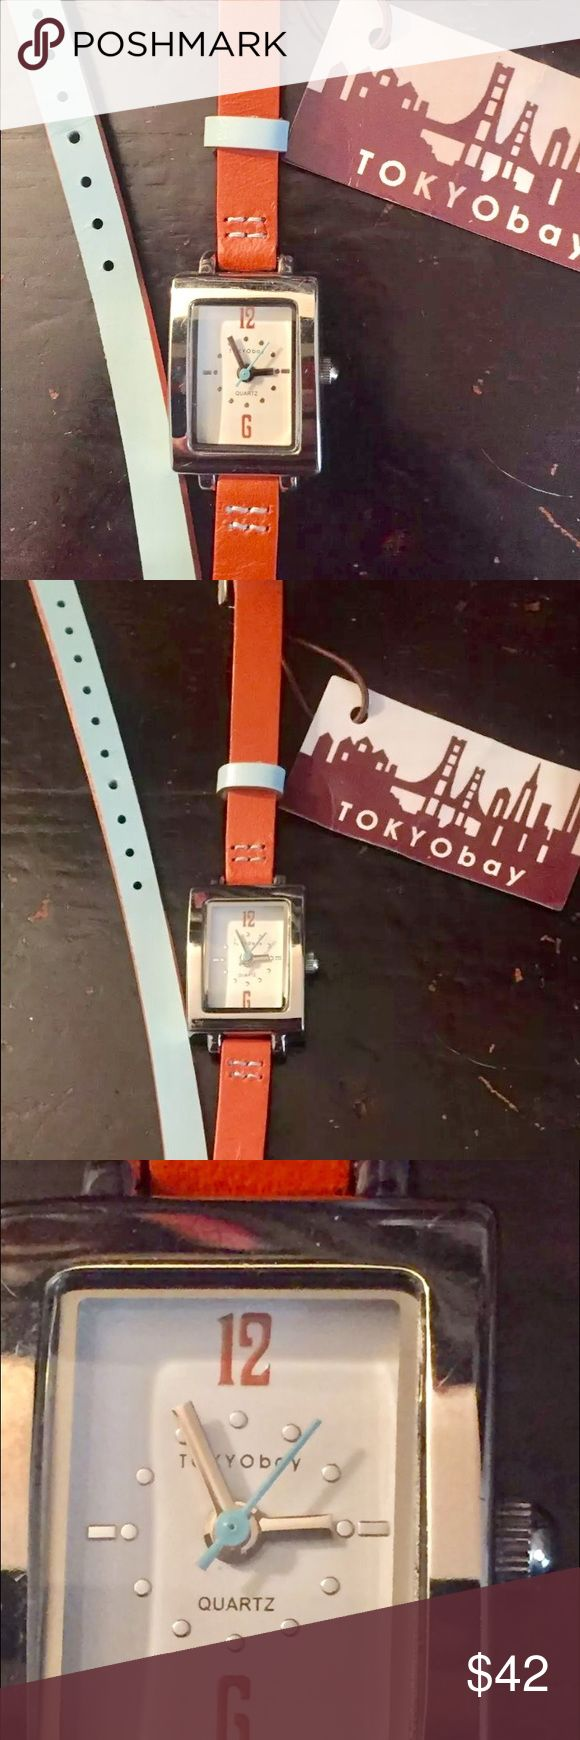 NWT Tokyo Bay Woman's Wrap Watch, Quartz (battery) Watch by Tokyo Bay, orange & blue, NWT, needs a new battery Tokyo Bay Accessories Watches